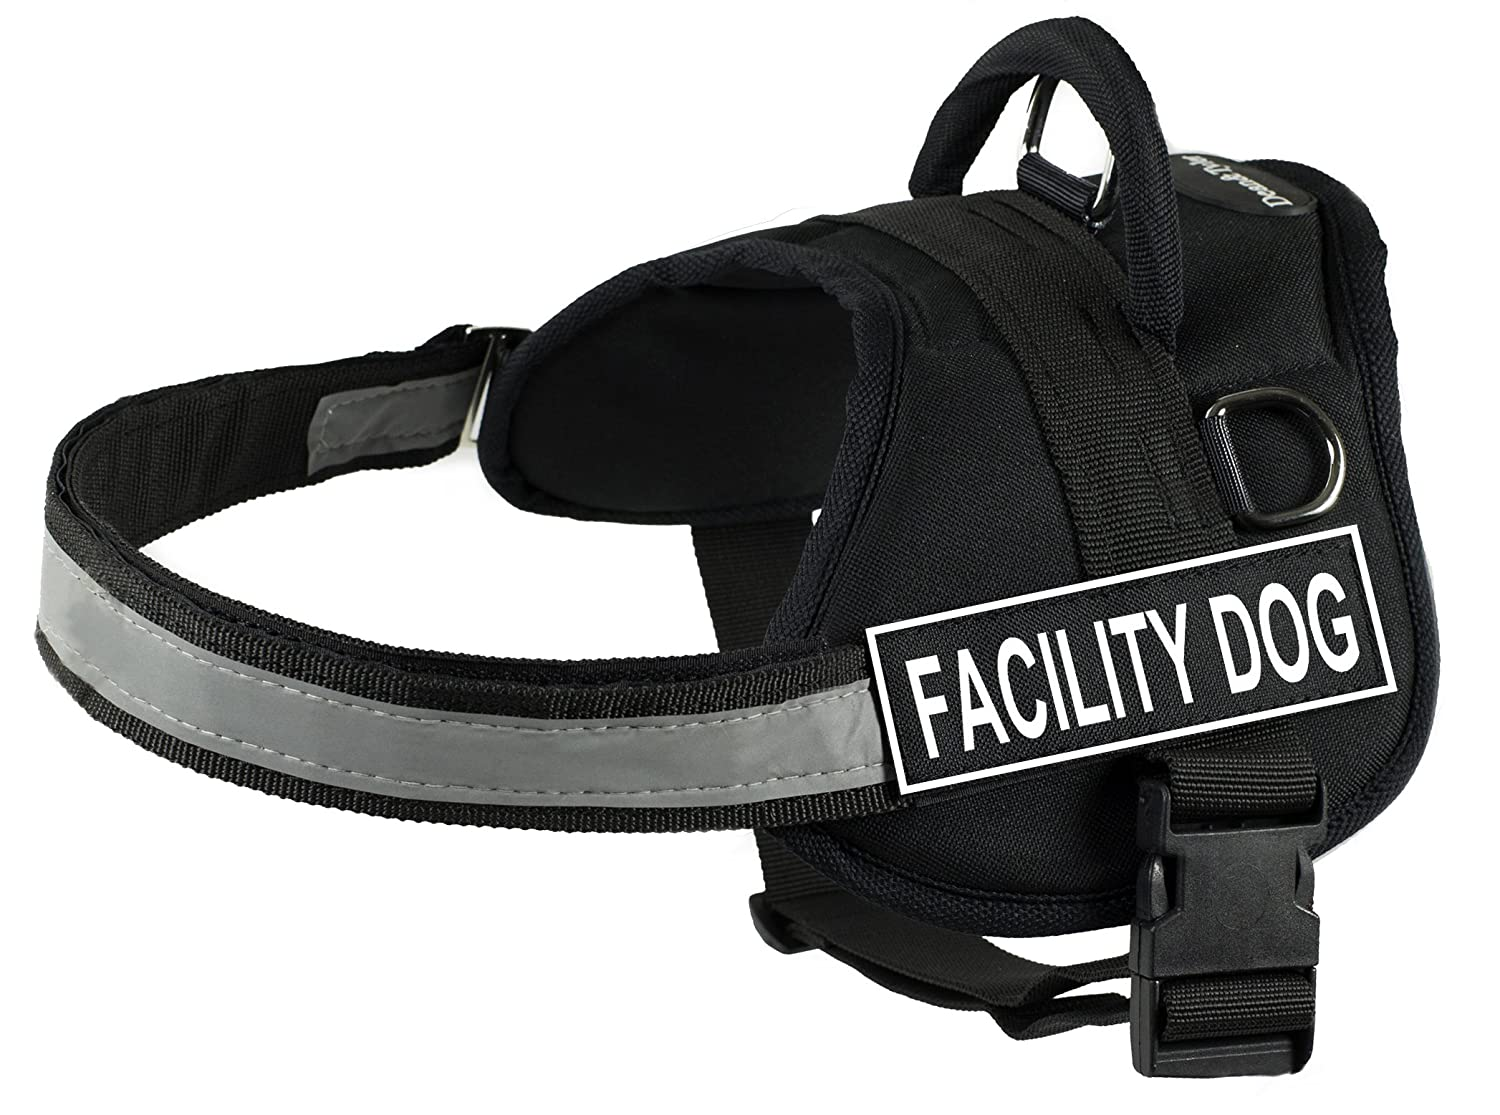 DT Works Harness, Facility Dog, Black White, Large Fits Girth Size  34-Inch to 47-Inch